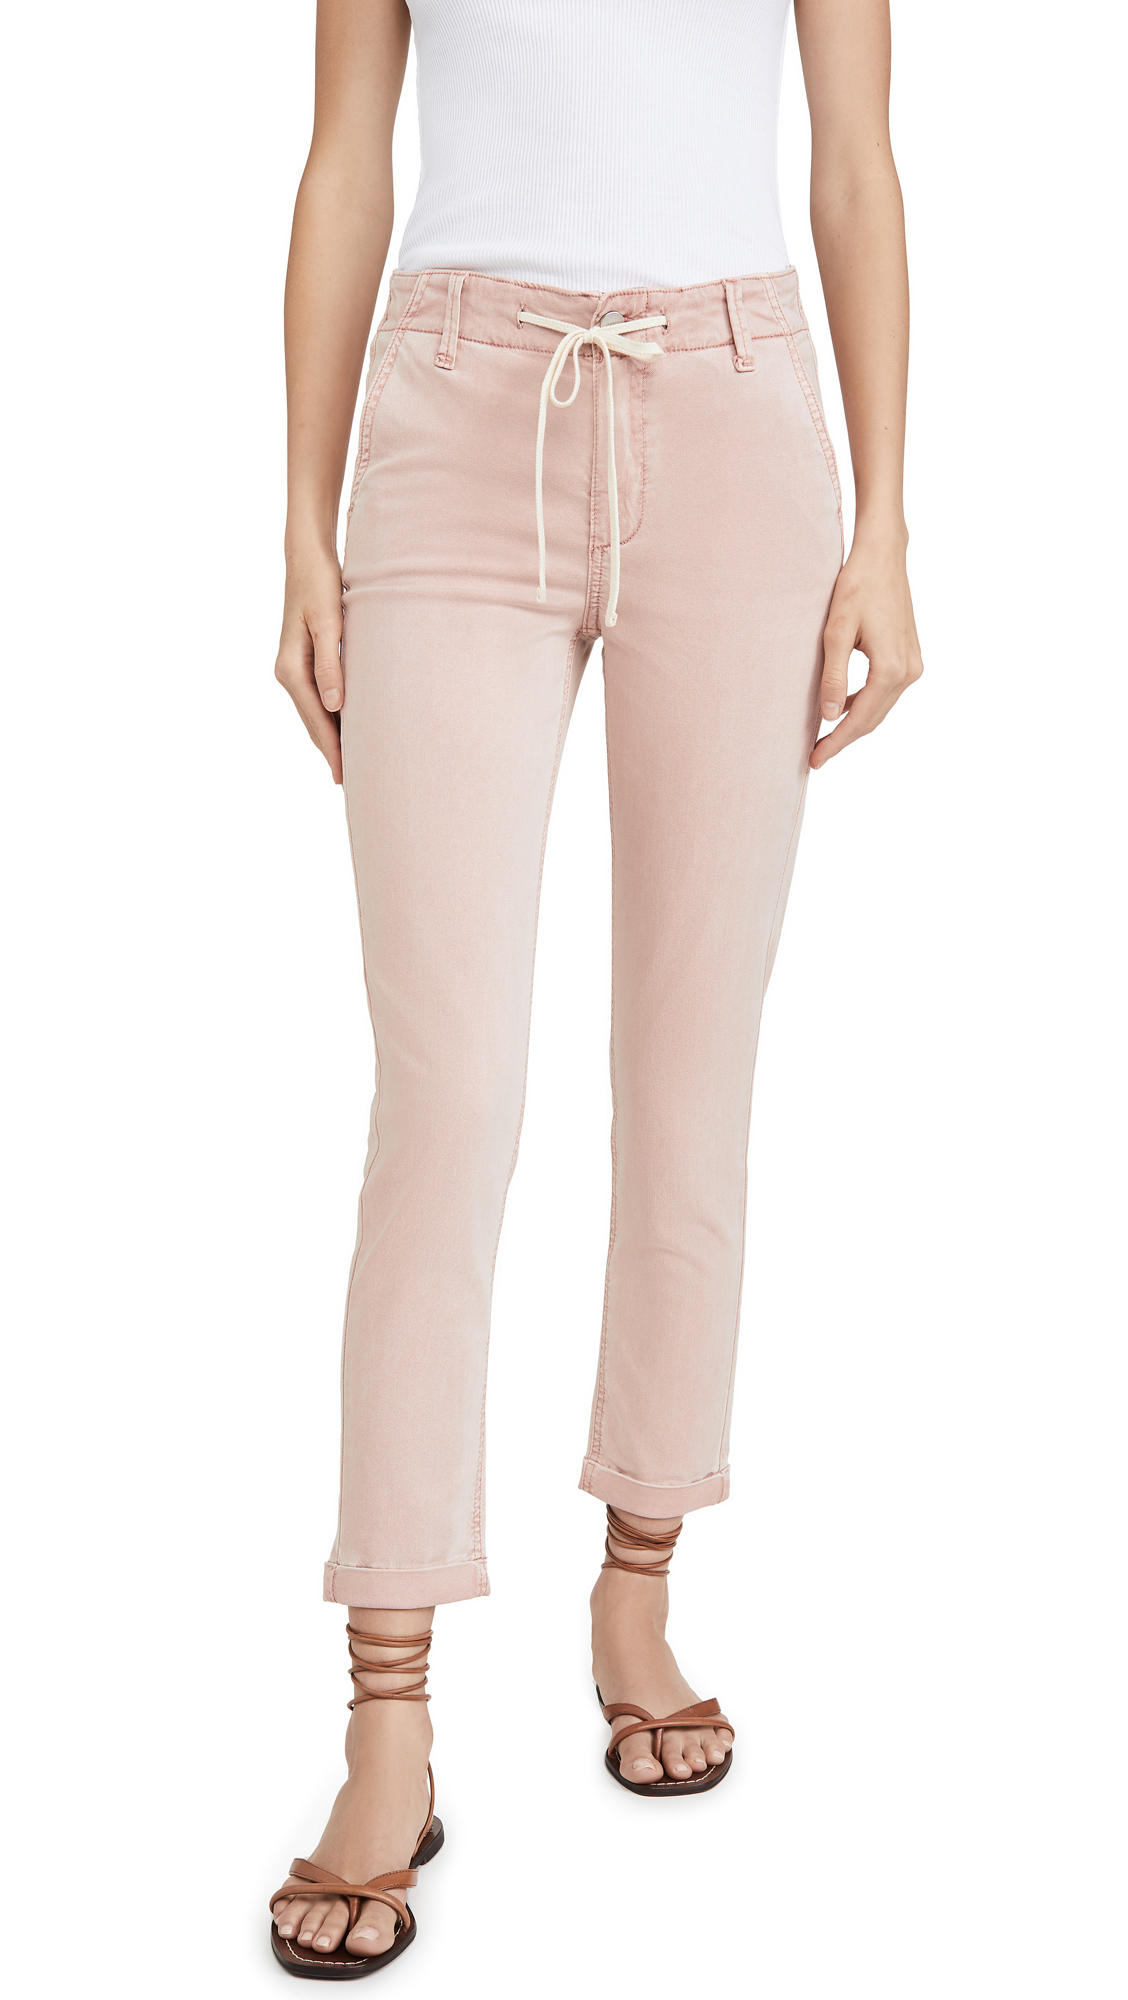 PAIGE Drawstring Pants with Cuff